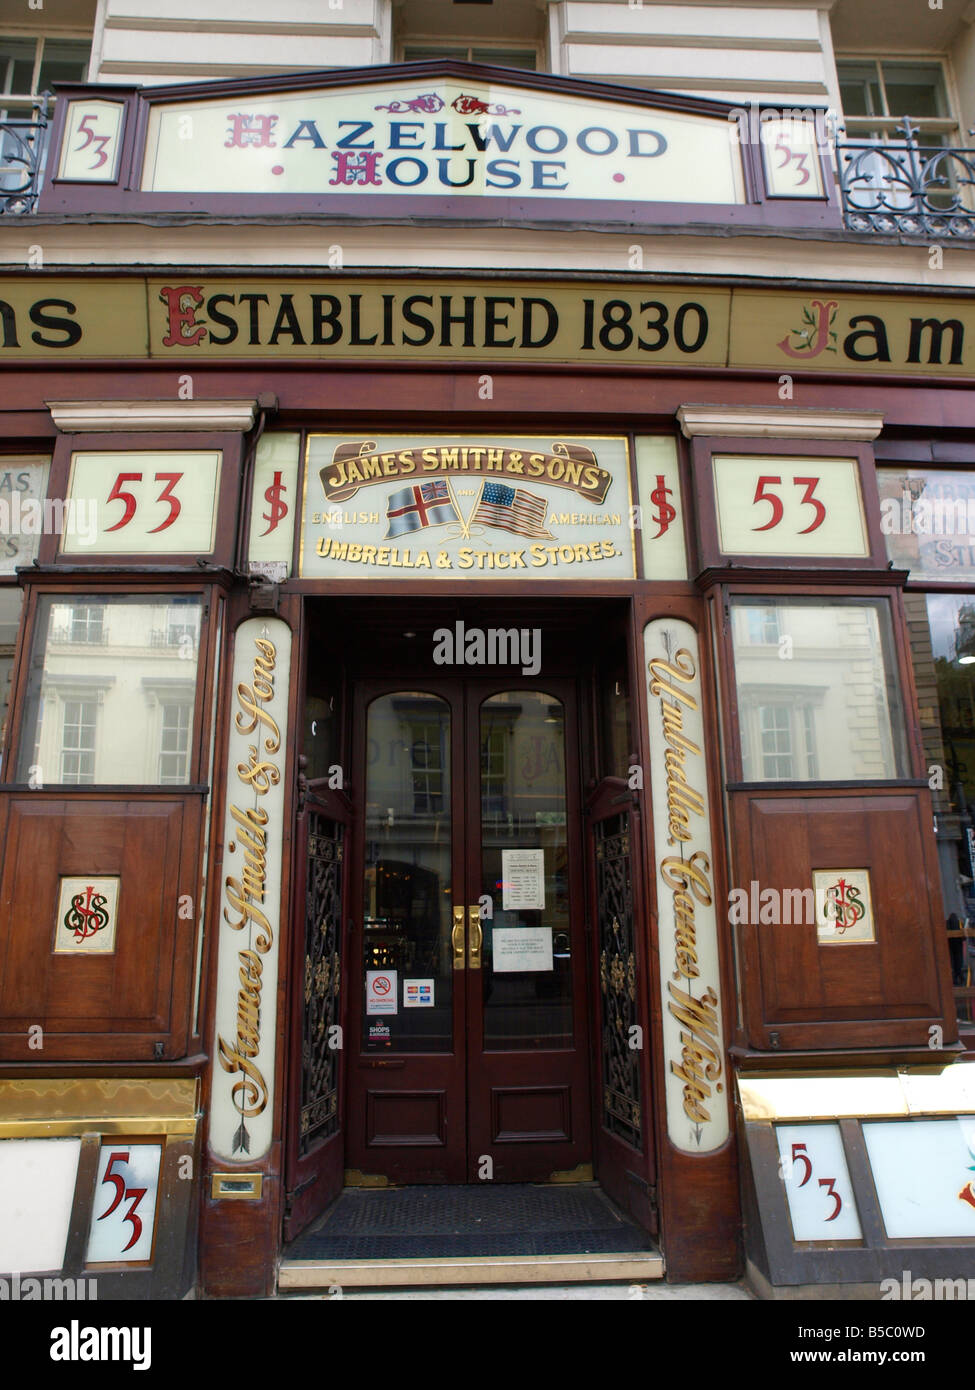 James Smith and Sons Umbrella shop 53 New Oxford Street London - Stock Image